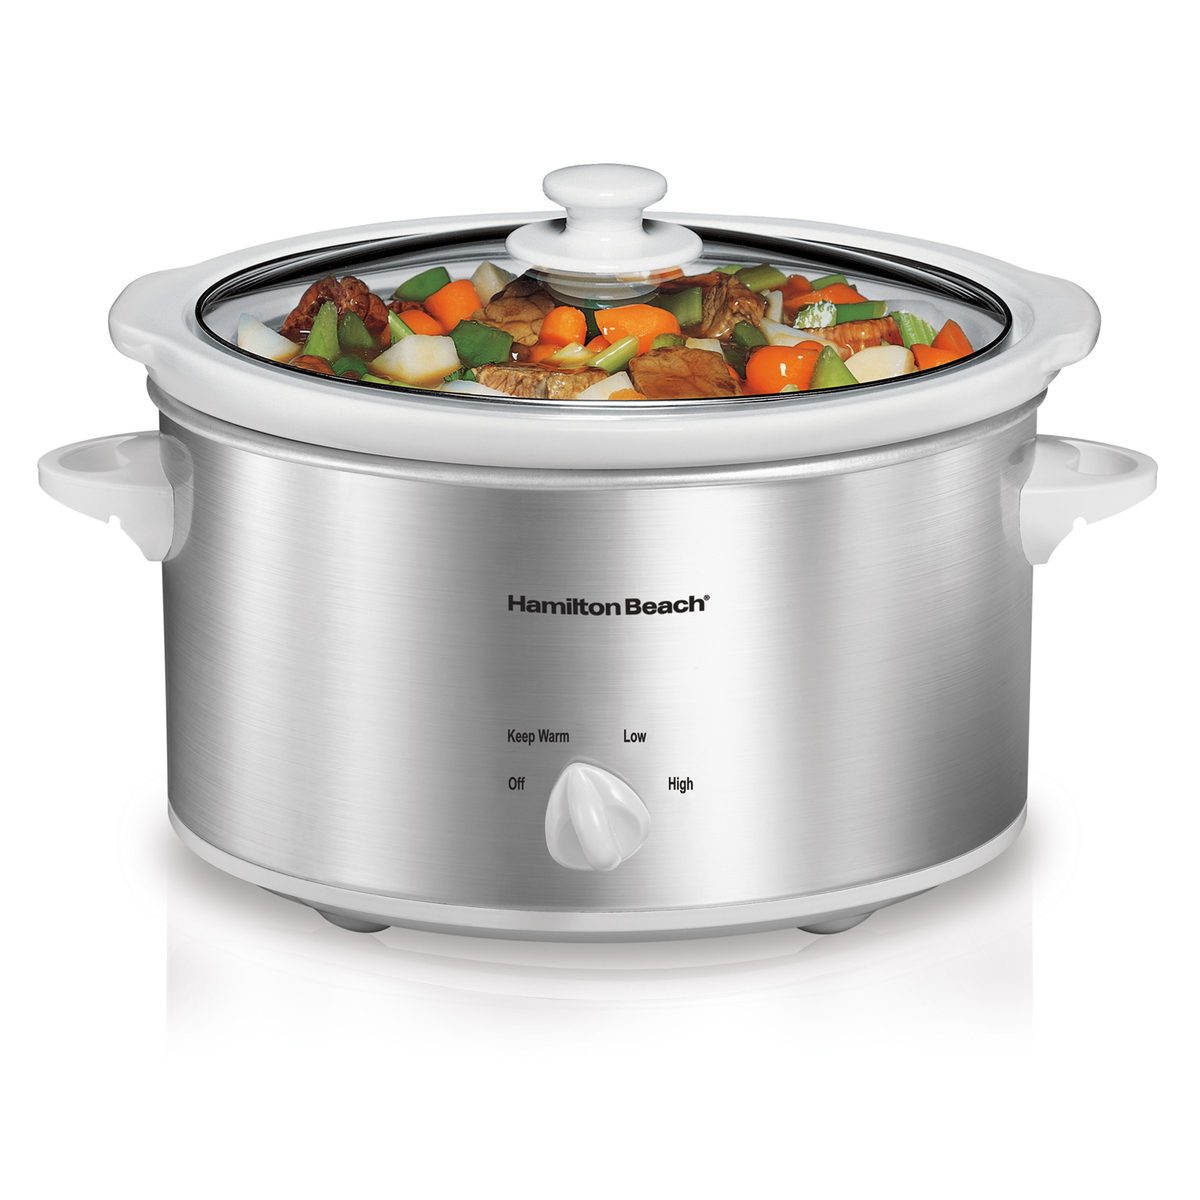 4 Quart Slow Cooker (33140V)